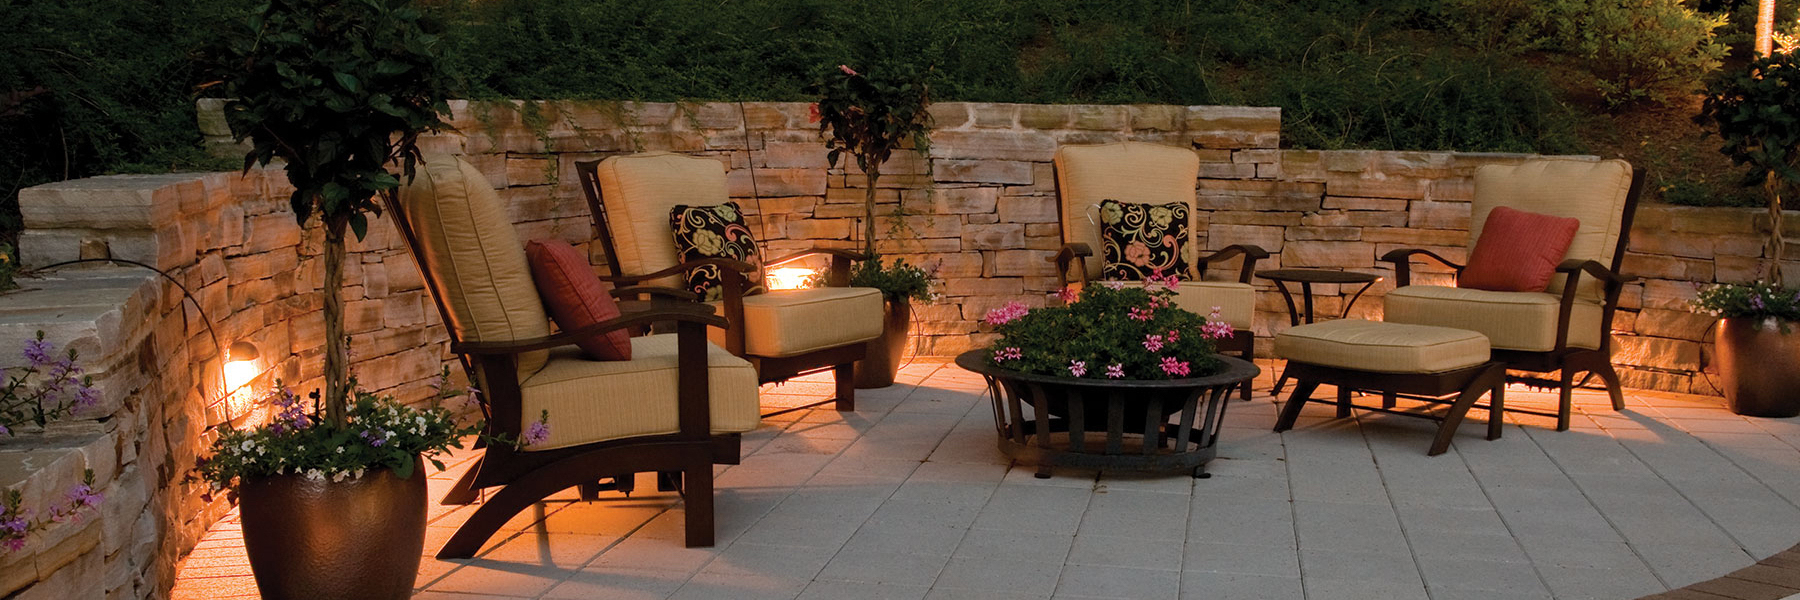 Inviting Patio Lighting